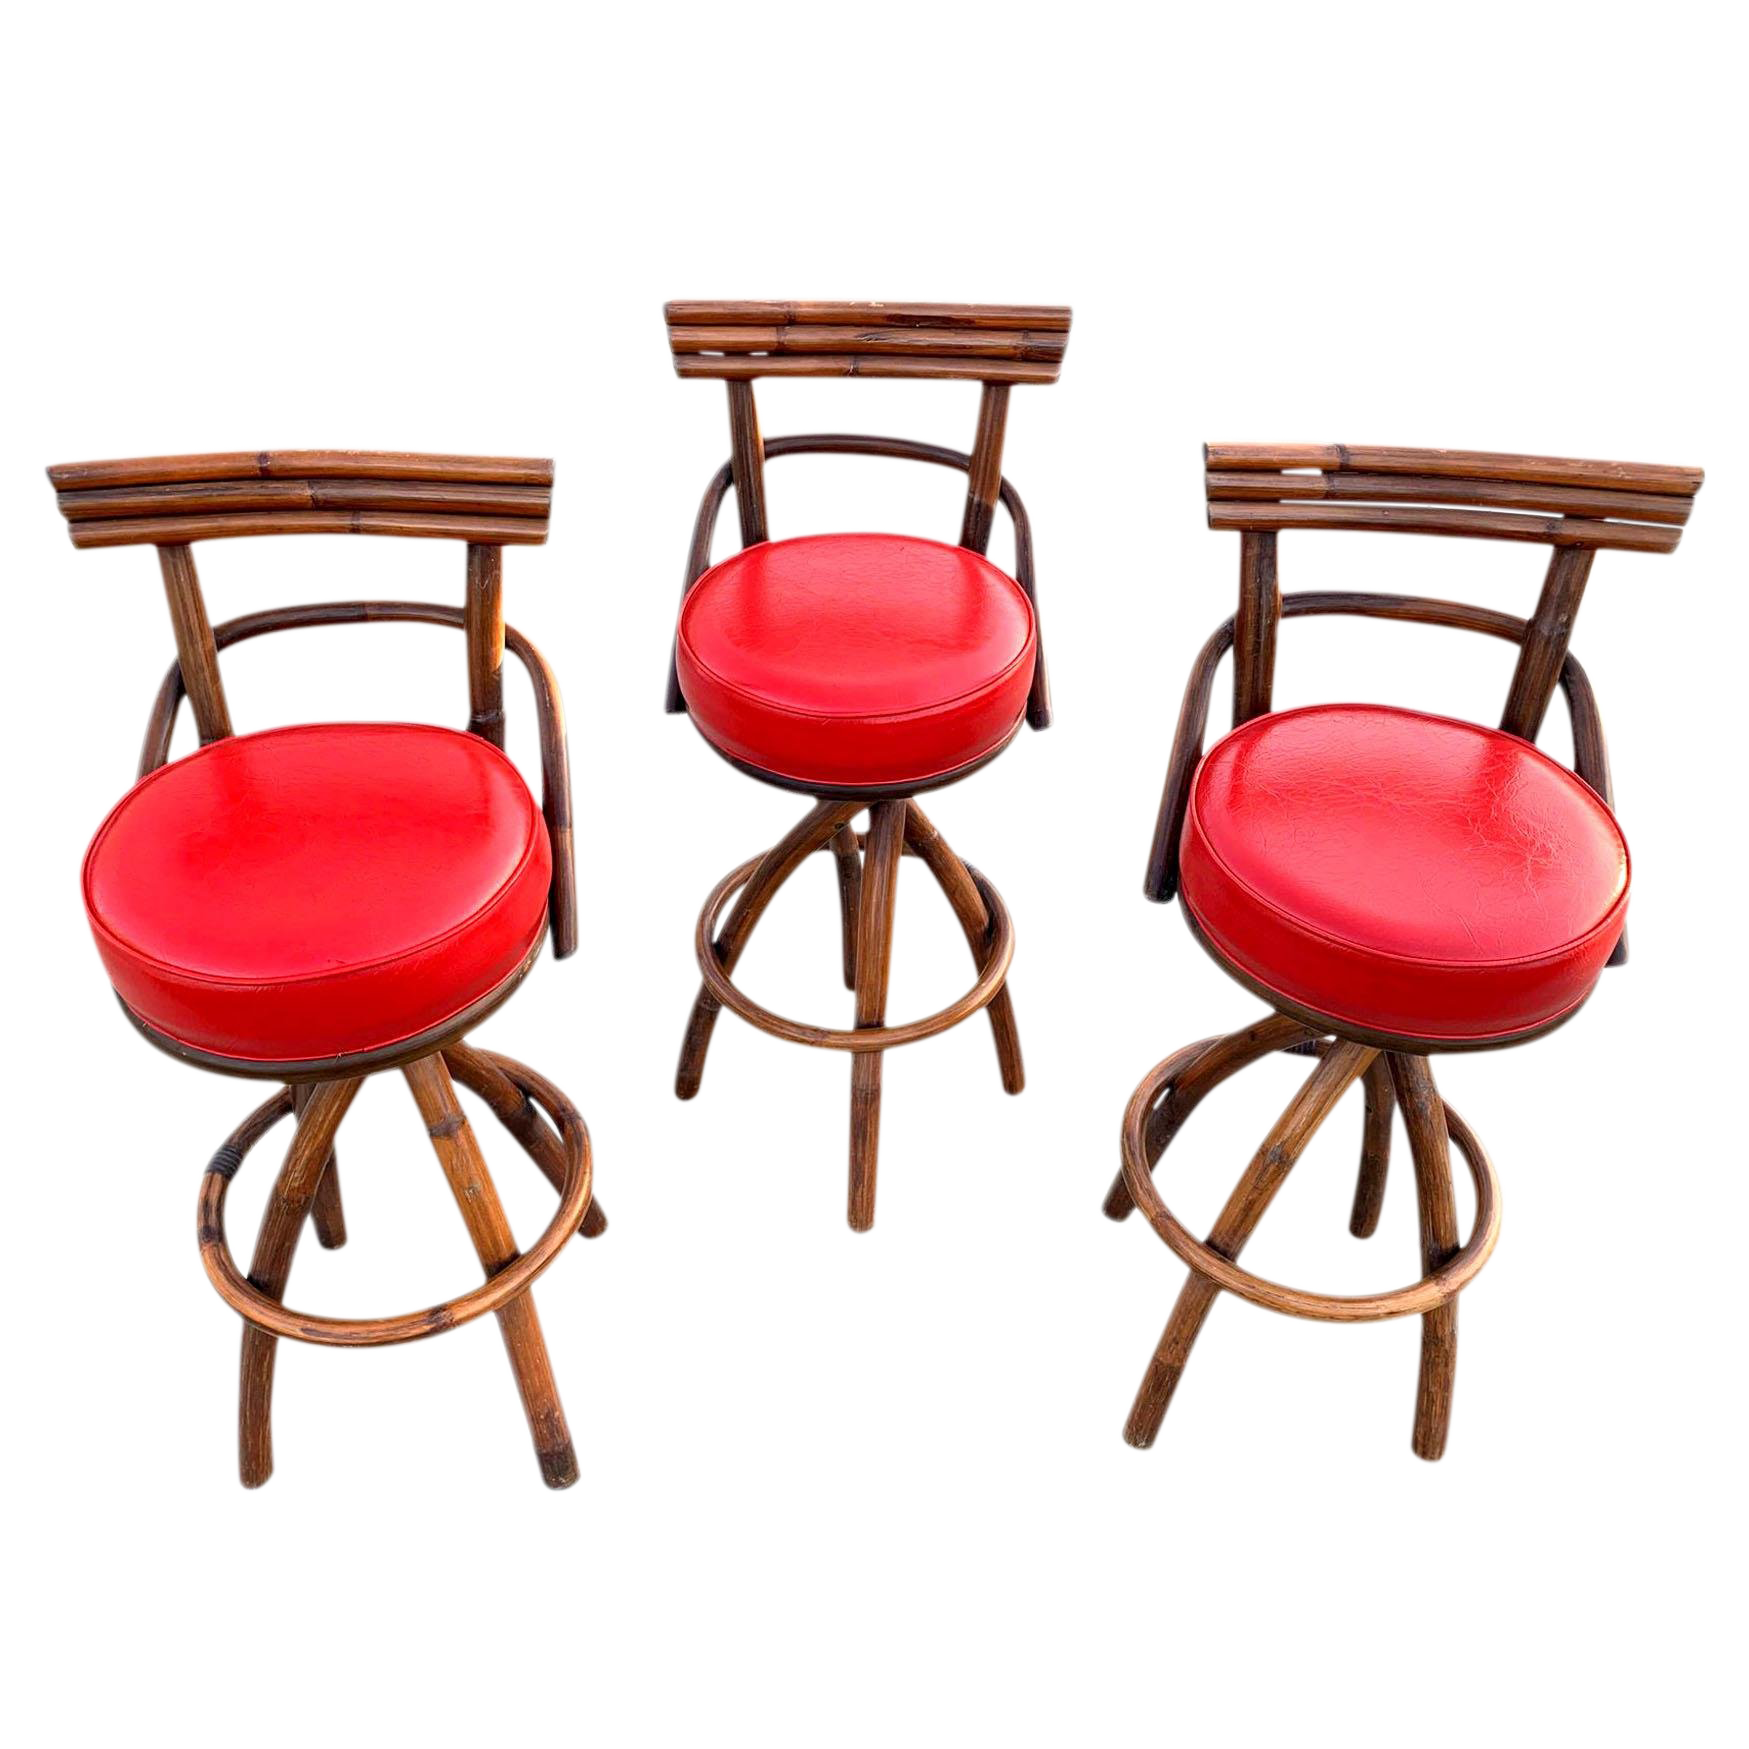 Awe Inspiring 1960S Vintage Paul Frankl Style Red Coral Bent Wood Bamboo Tiki Bar Stools Set Of 3 Machost Co Dining Chair Design Ideas Machostcouk